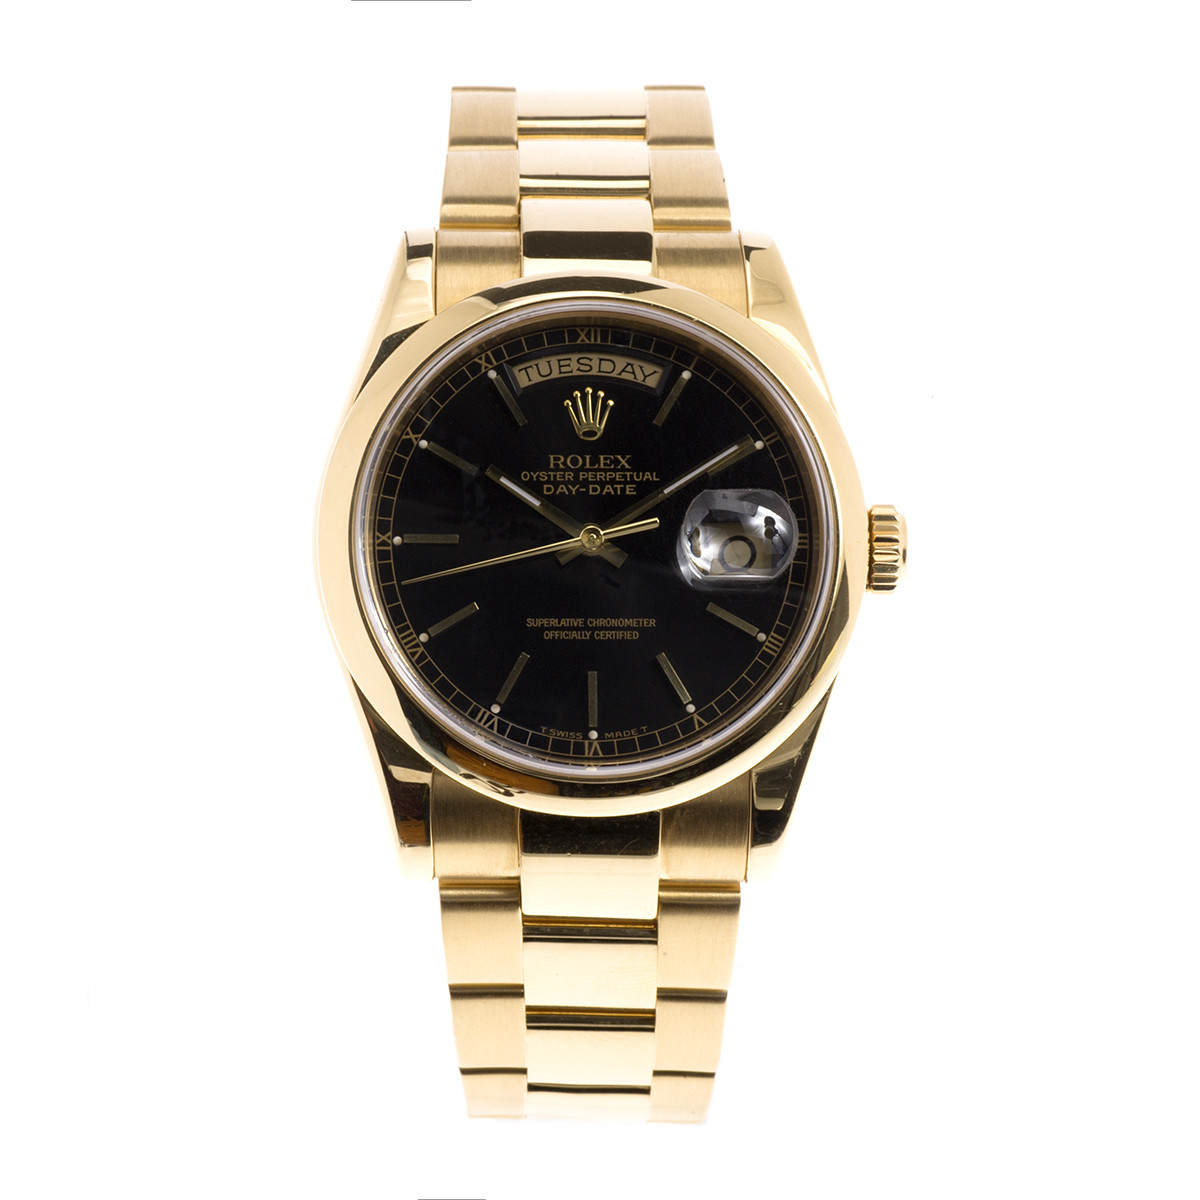 Preowned 18K Gold Rolex Day-Date President with Black Dial